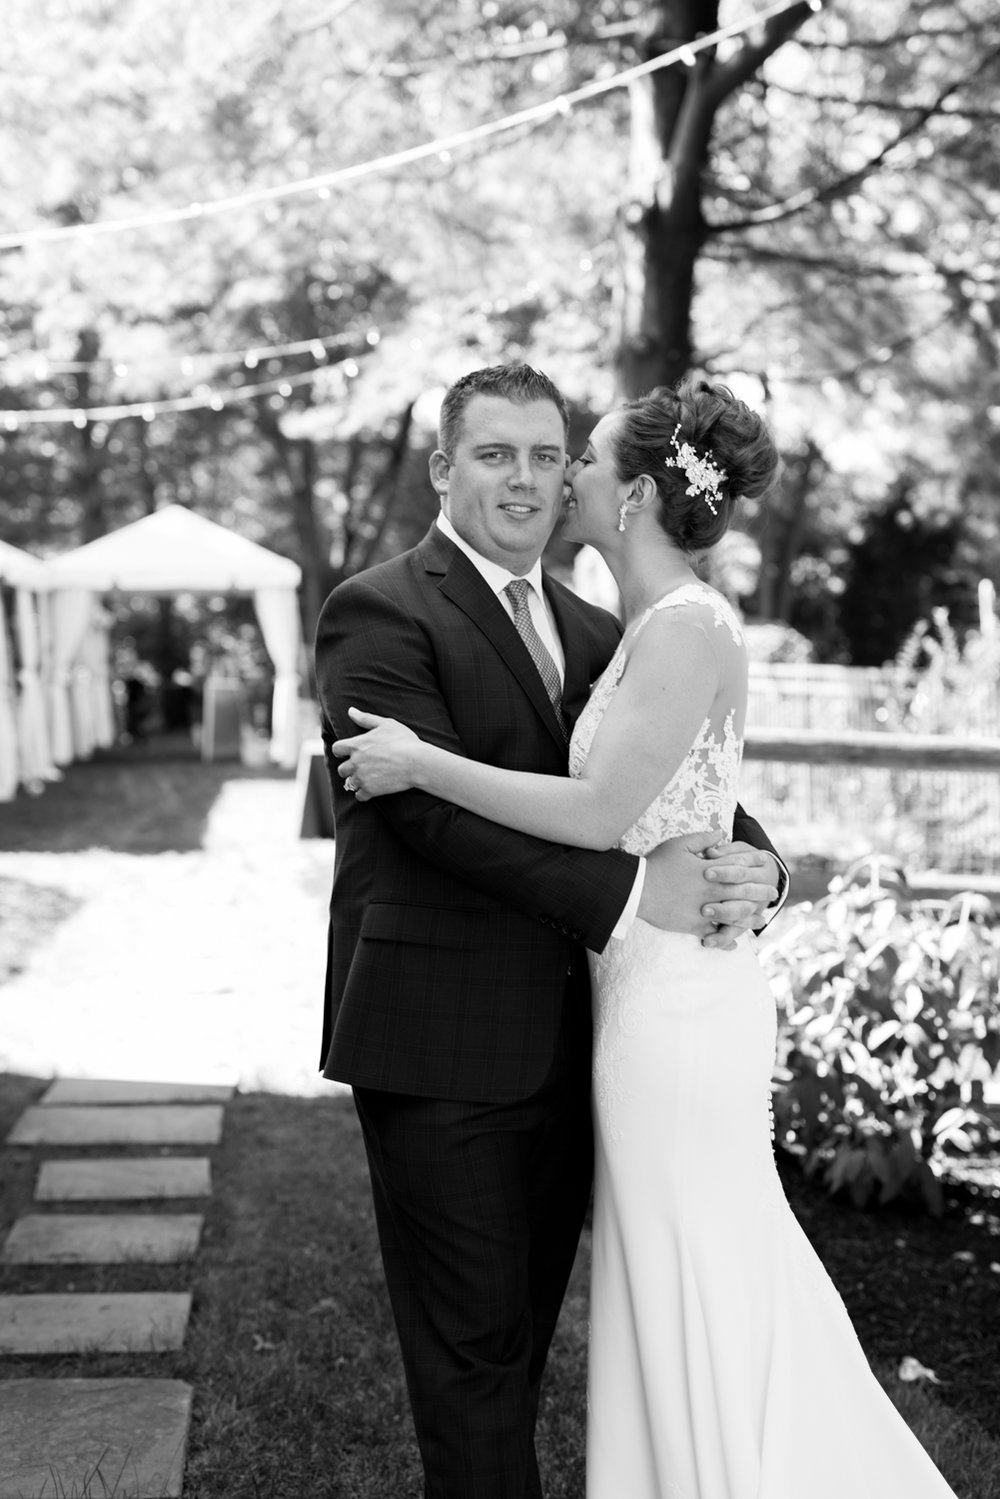 Lauren+AJ- DIY Backyard Wedding- New Jersey- Olivia Christina Photo-58.JPG